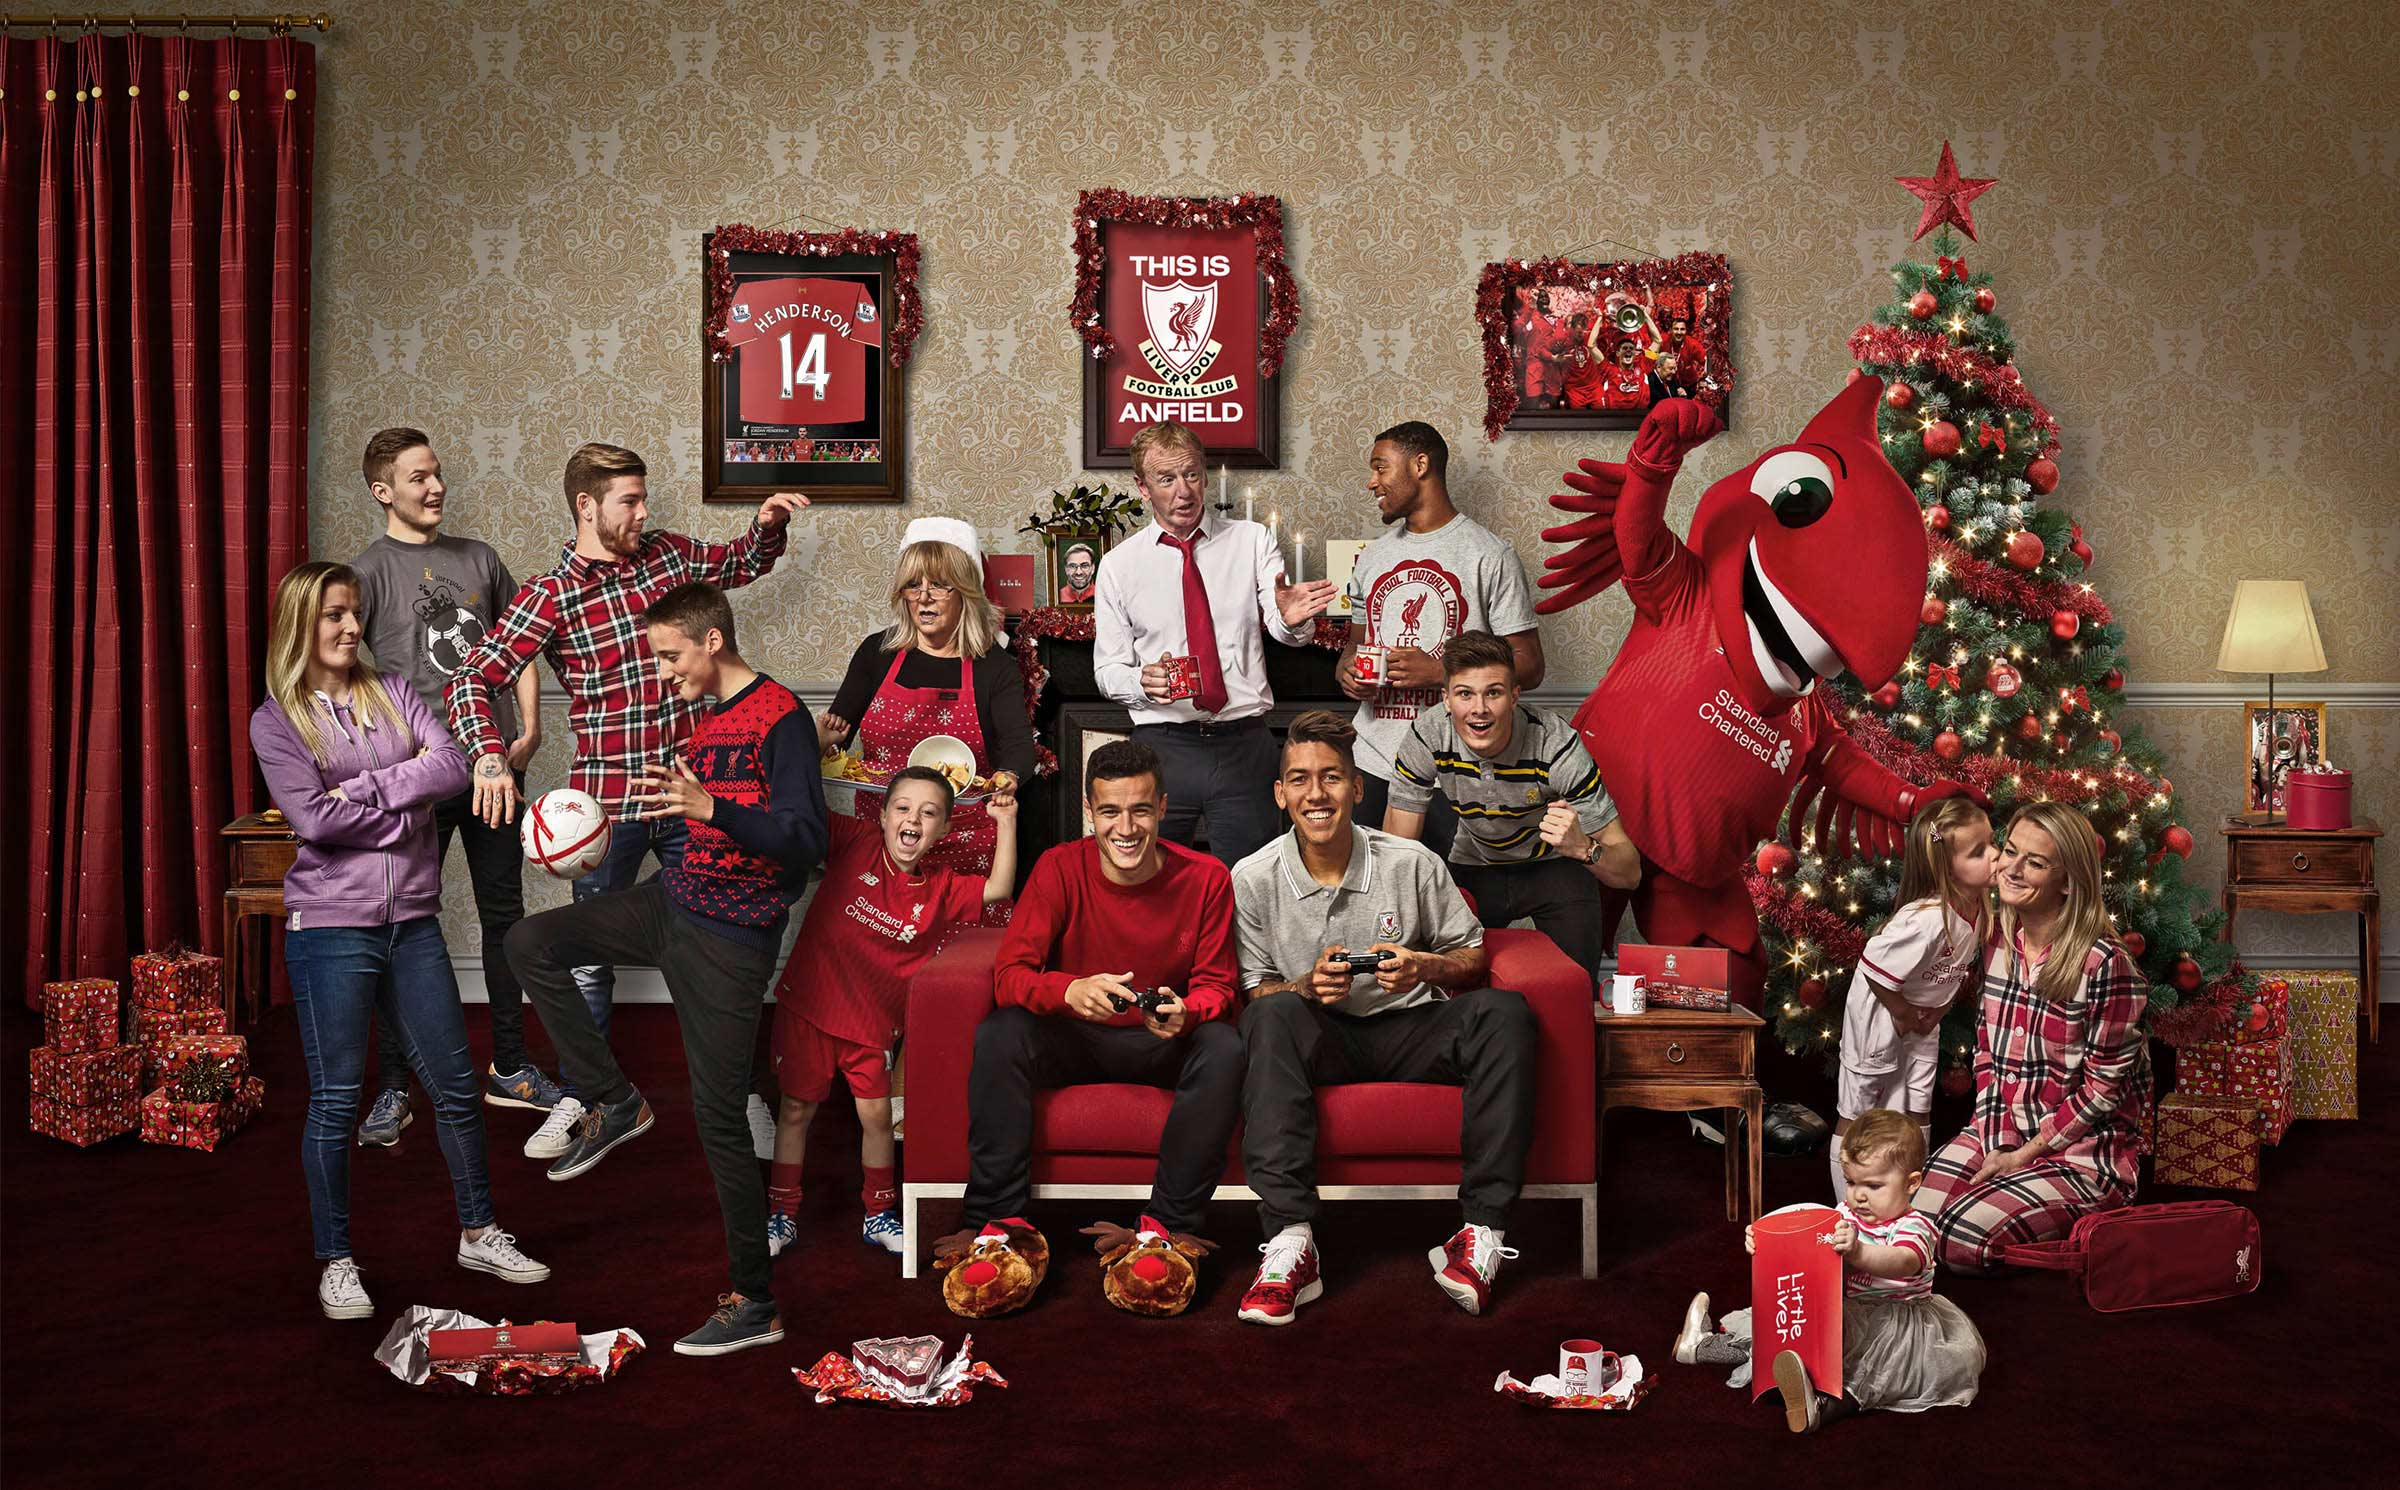 Liverpool FC Christmas membership campaign